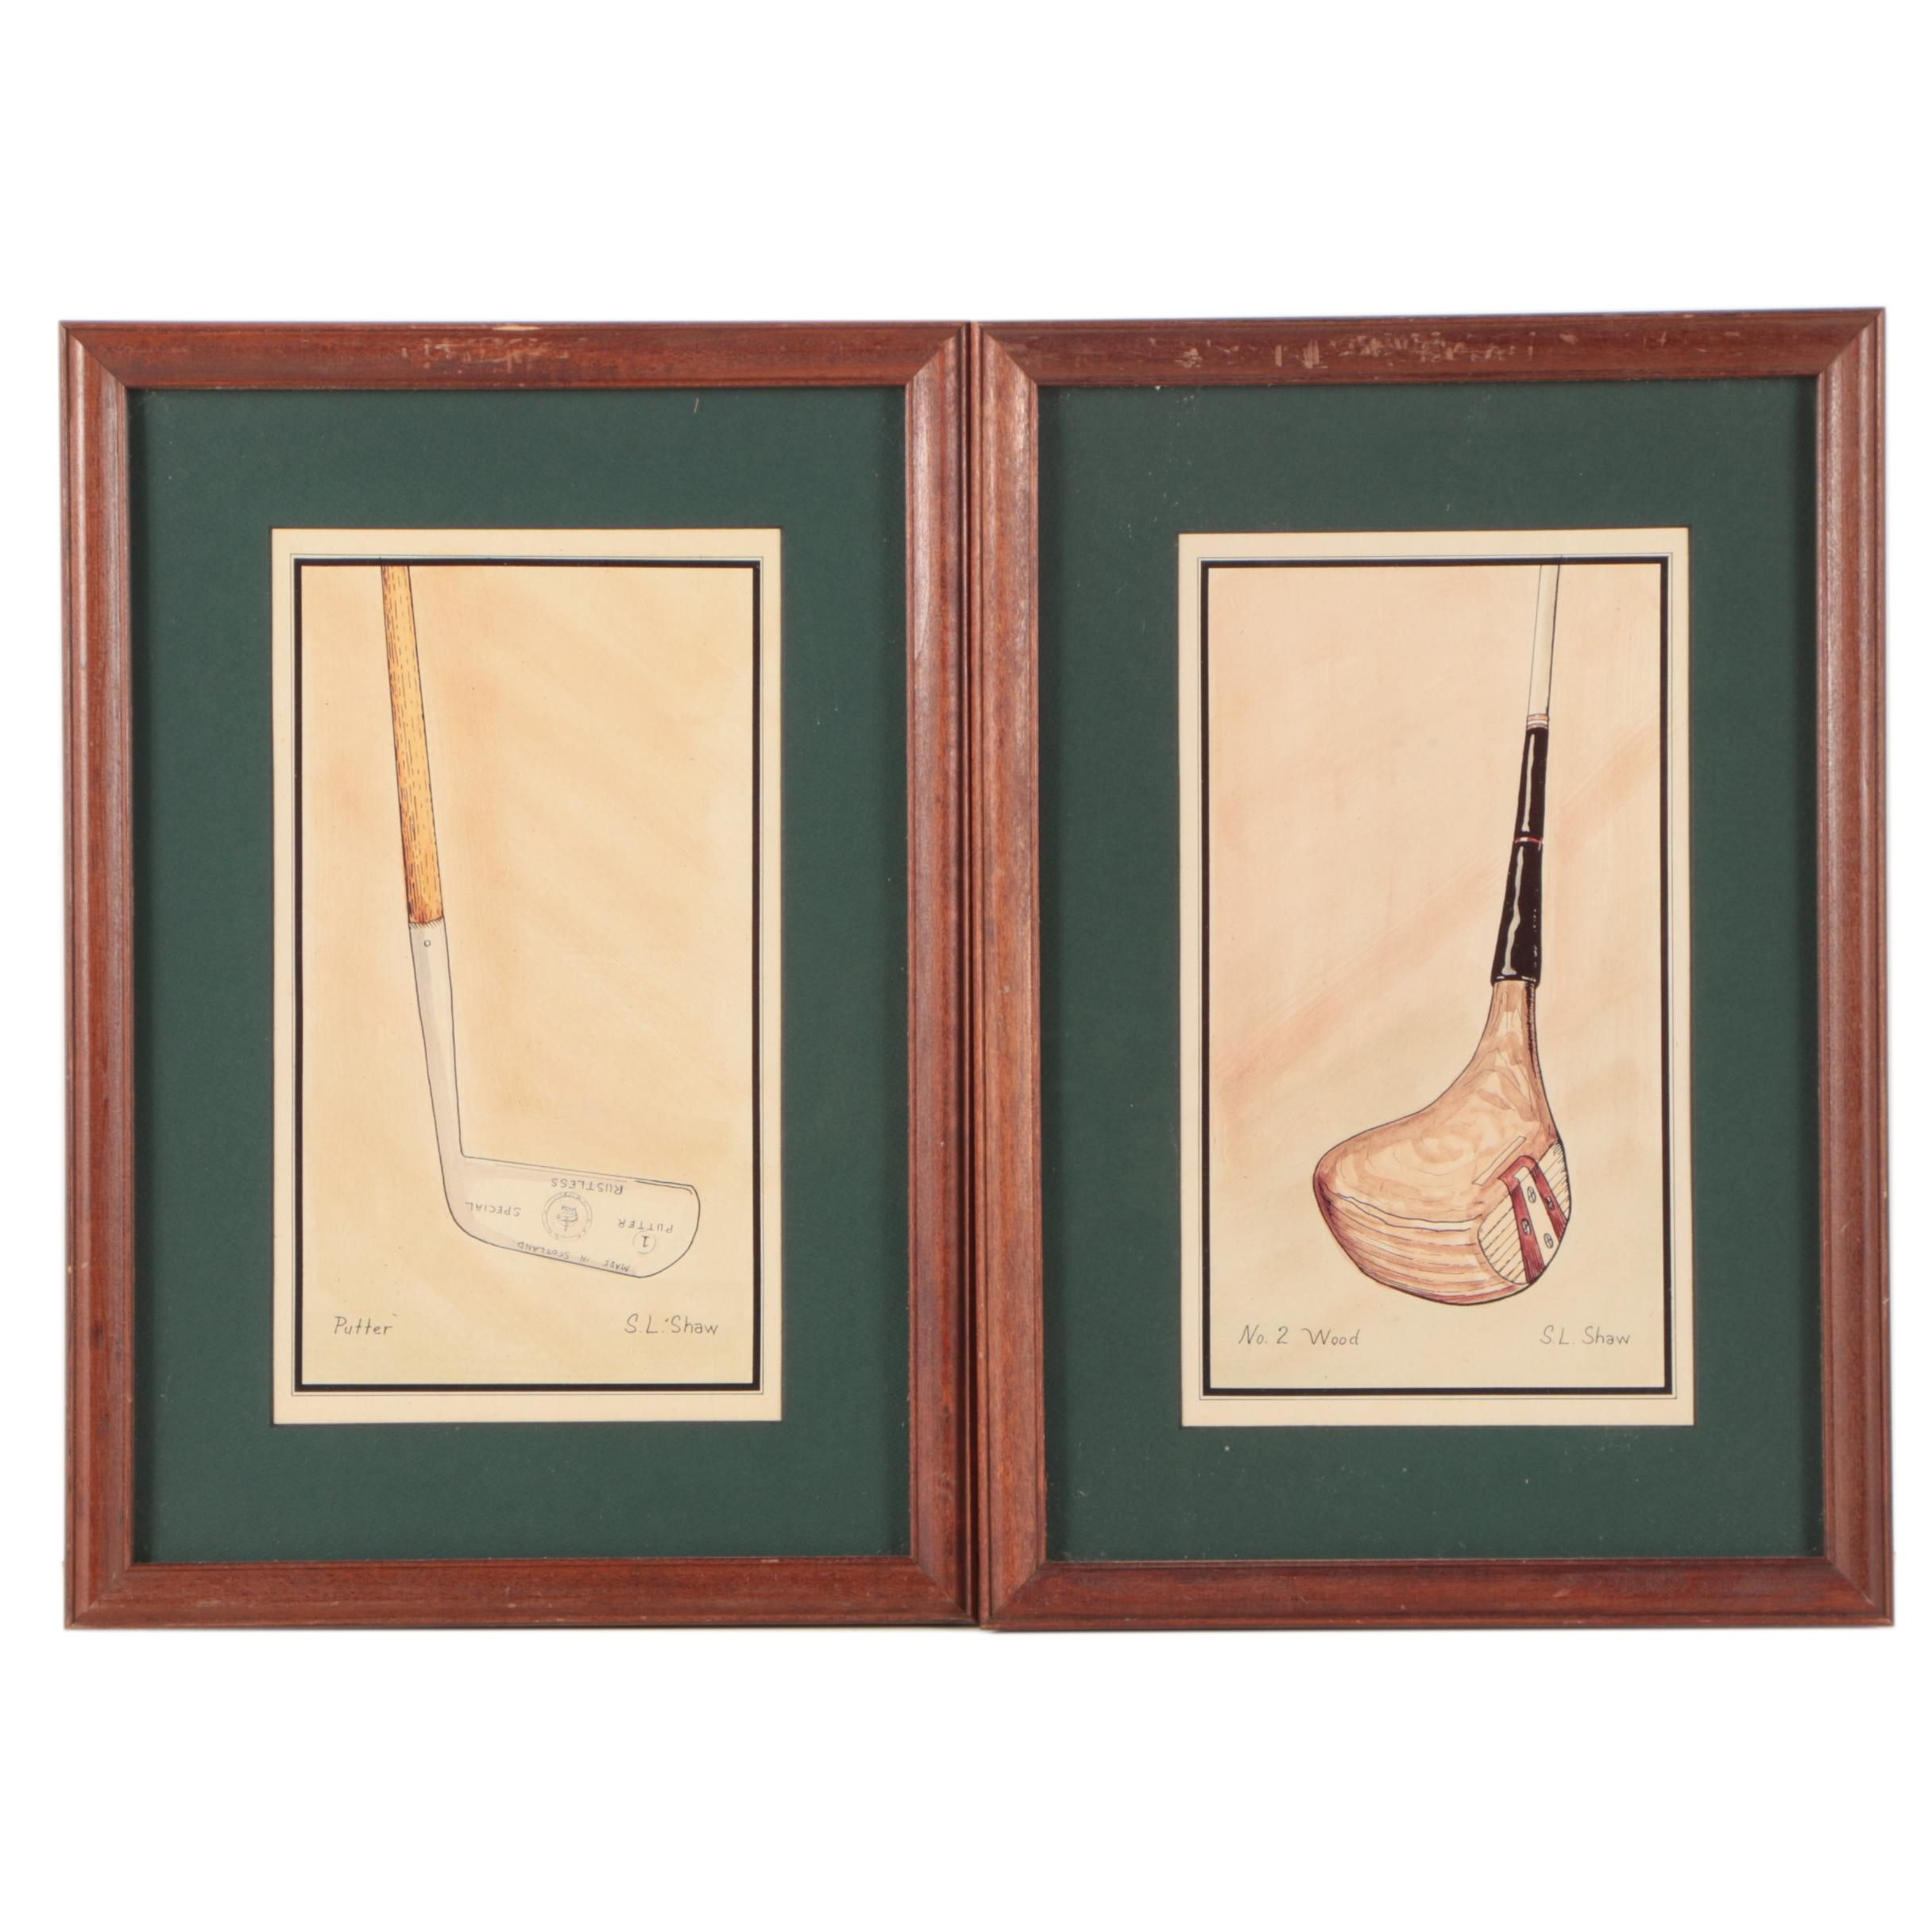 """Offset Lithographic Golf Prints After S.L. Shaw """"Putter"""" and """"No. 2 Wood"""""""